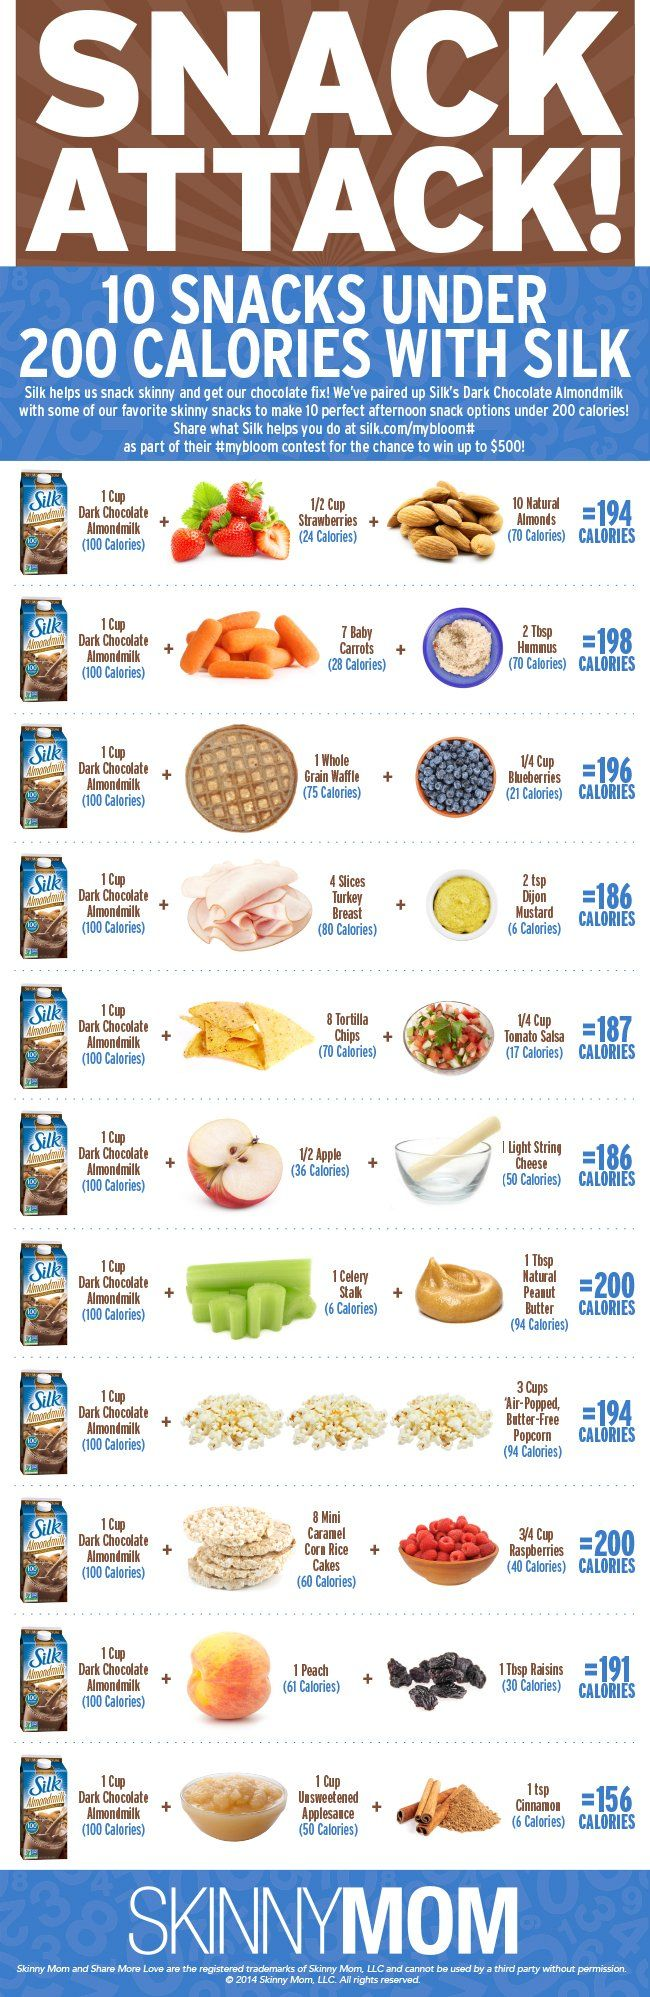 10 Snacks Under 200 Calories | Skinny Mom | Where Moms Get the Skinny on Healthy…